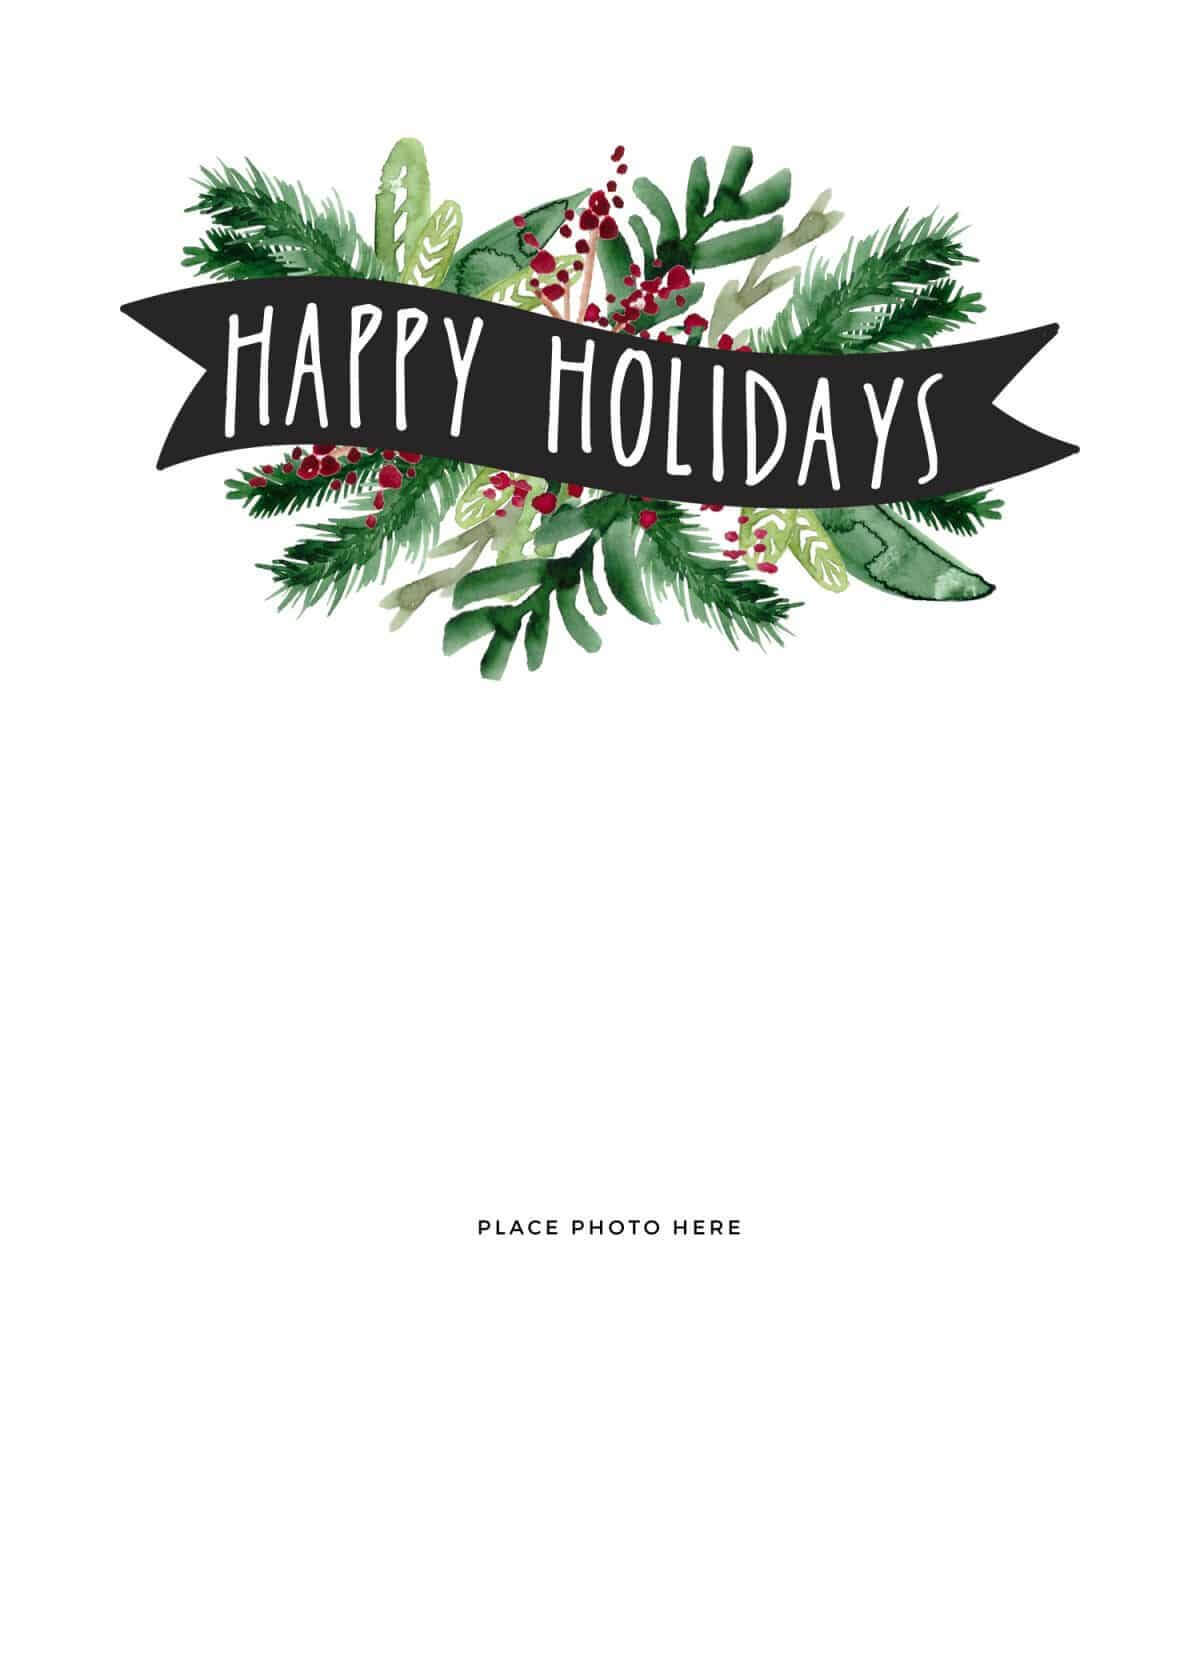 Make Your Own Photo Christmas Cards (For Free!) - Somewhat With Happy Holidays Card Template